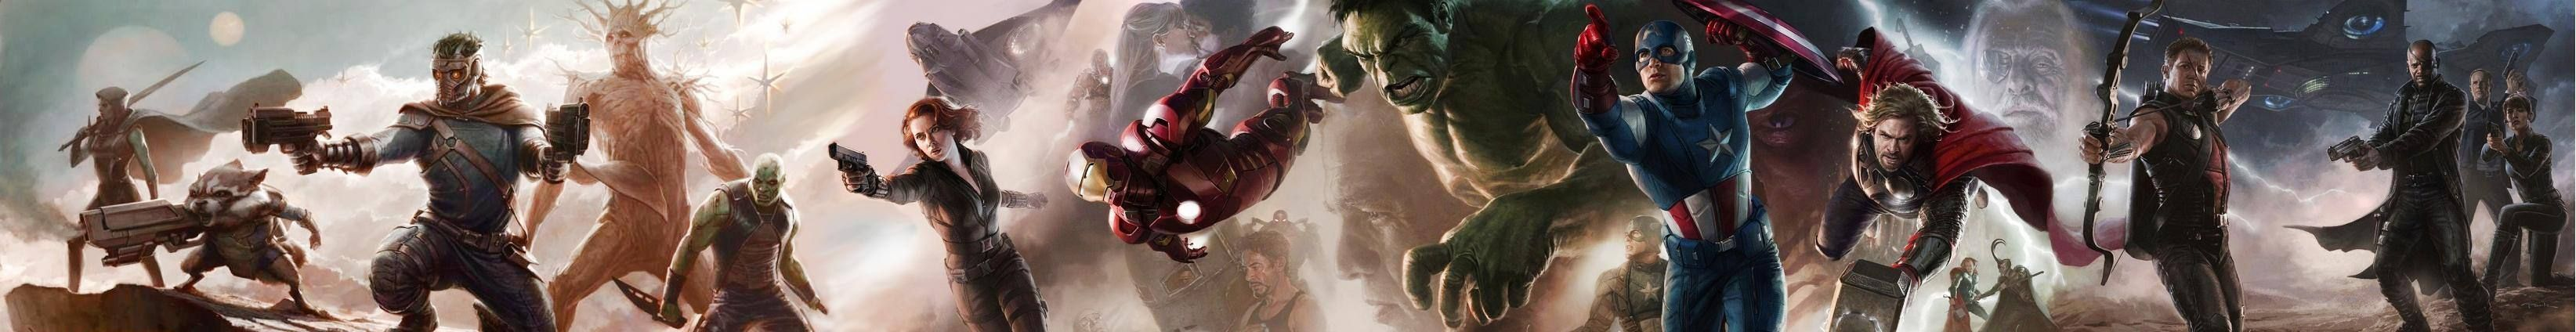 The-Avengers-Guardians-of-the-Galaxy-Concept-Art-Posters-Combined